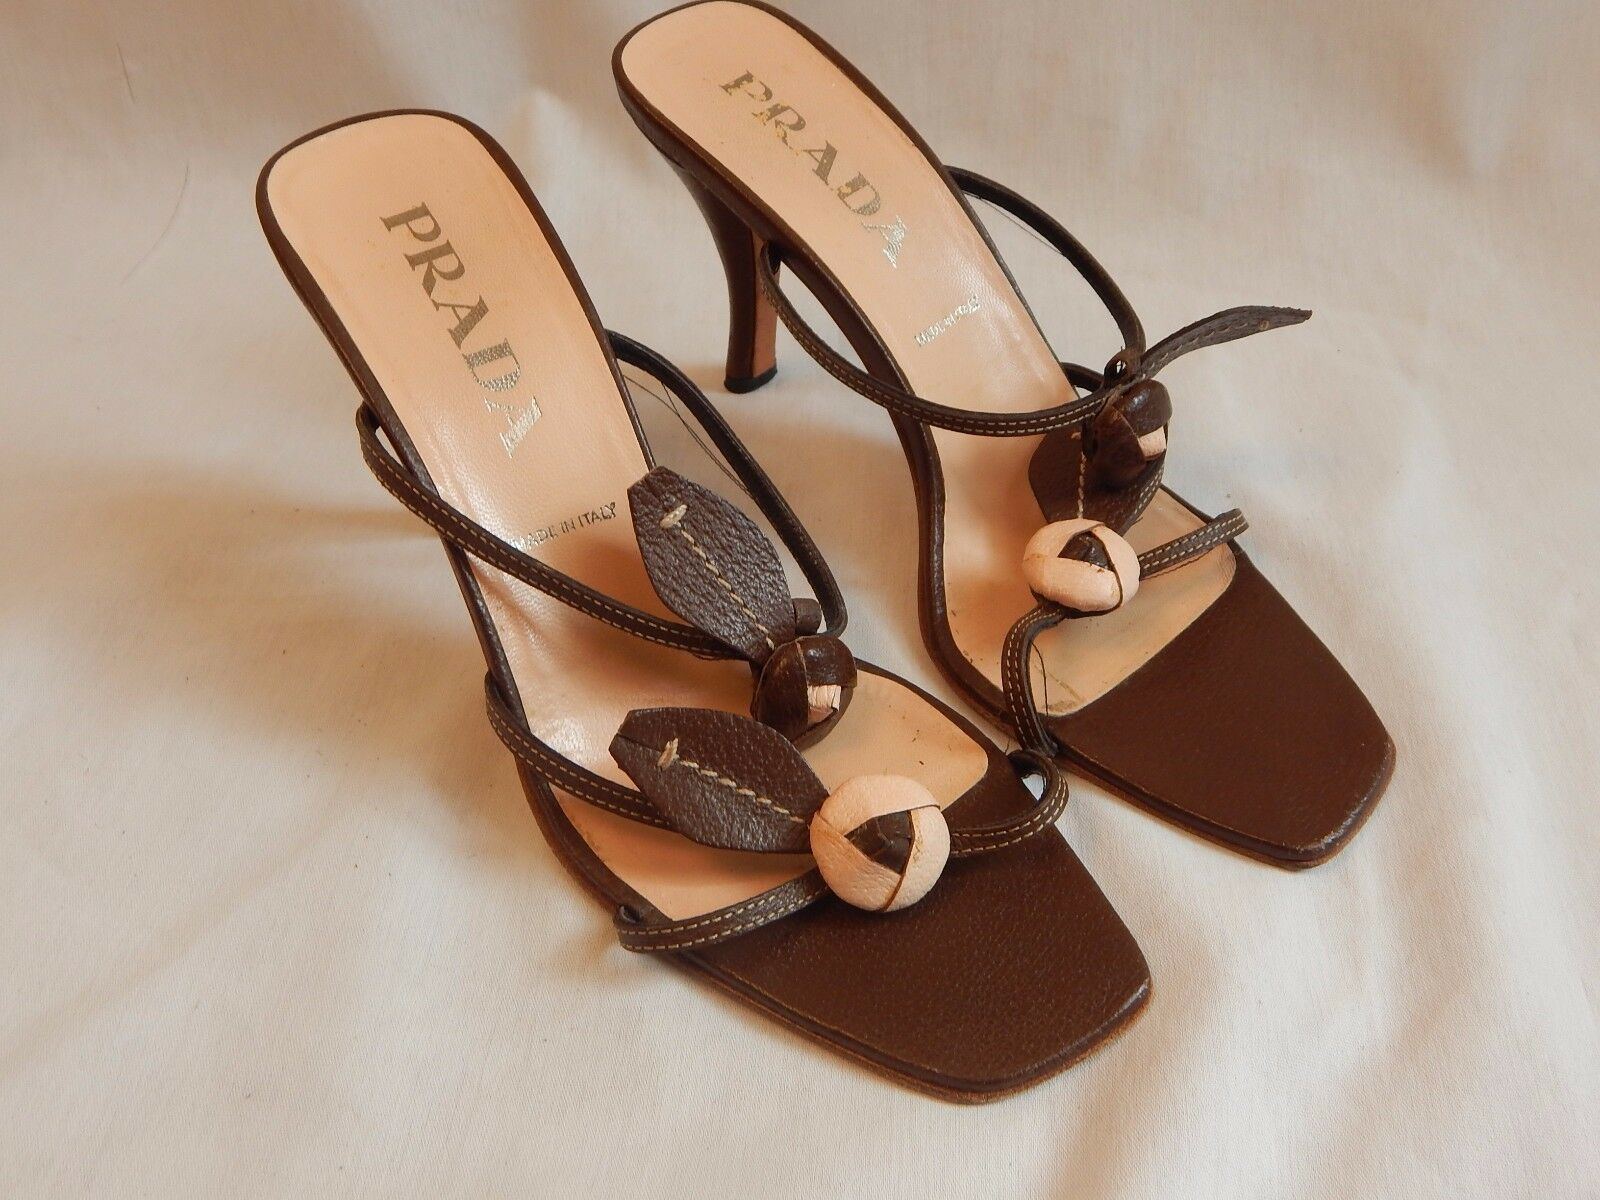 Prada stiletto stiletto stiletto sandals, size 38.5, heel 3.5 , made in italy, brown leather 370183